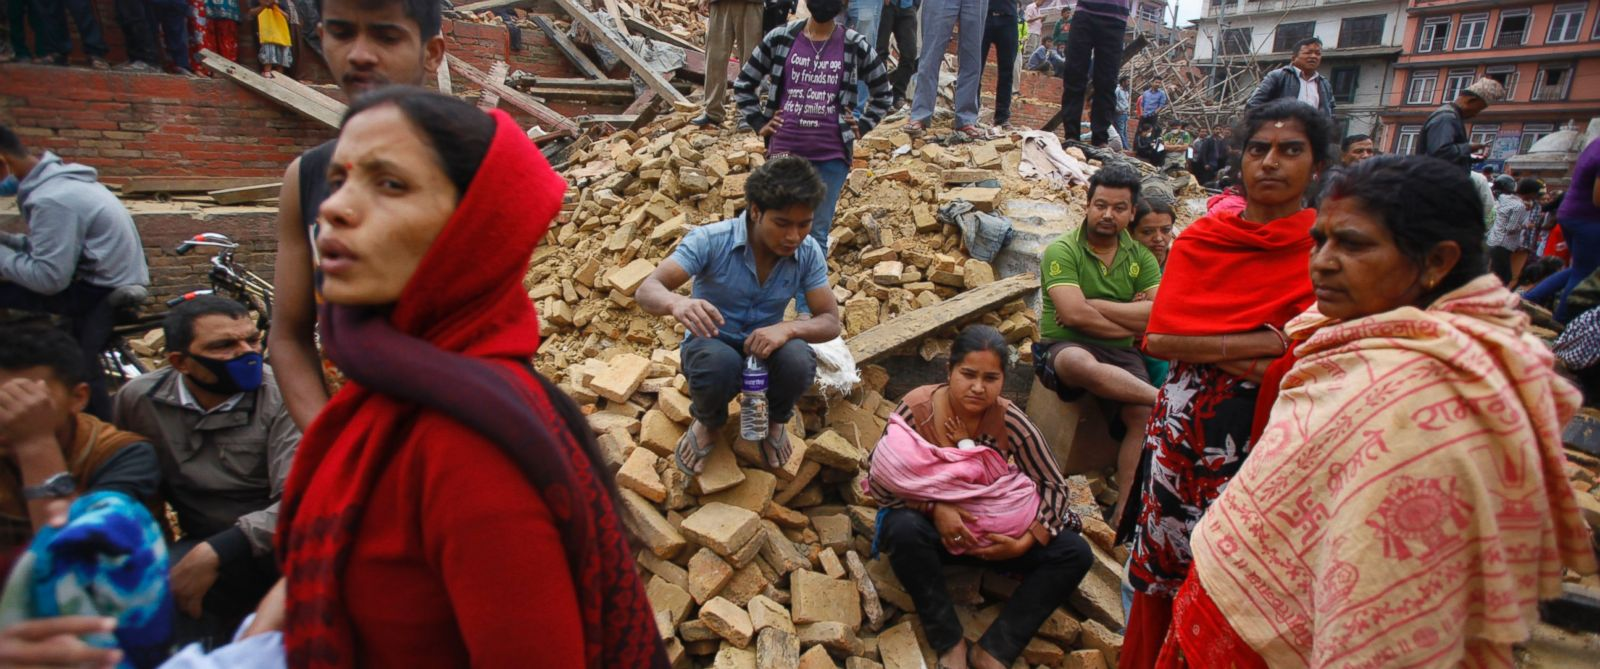 PHOTO: People rest on debris at Durbar Square after an earthquake in Kathmandu, Nepal, Saturday, April 25, 2015. A strong magnitude-7.9 earthquake shook Nepals capital and the Kathmandu Valley Saturday.